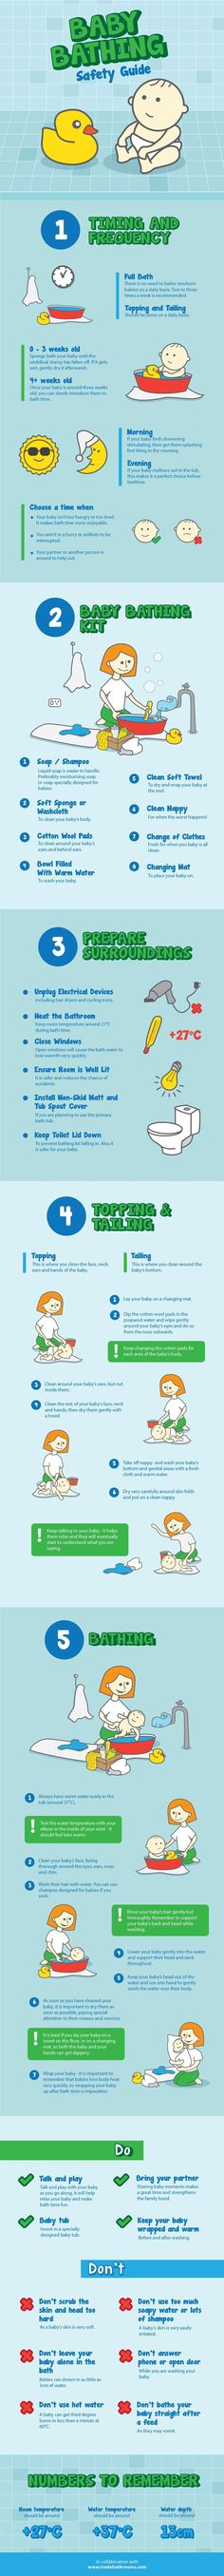 Baby Bathing Safety Guide! This infographic is a fantastic resource for all parents on baby bath time. There are some important things to bear in mind to make sure your baby is safe at all times. #aqiskincare #skincare #naturalskincare #natural #sensitiveskincare #australianmade #australianowned #baby #babycare